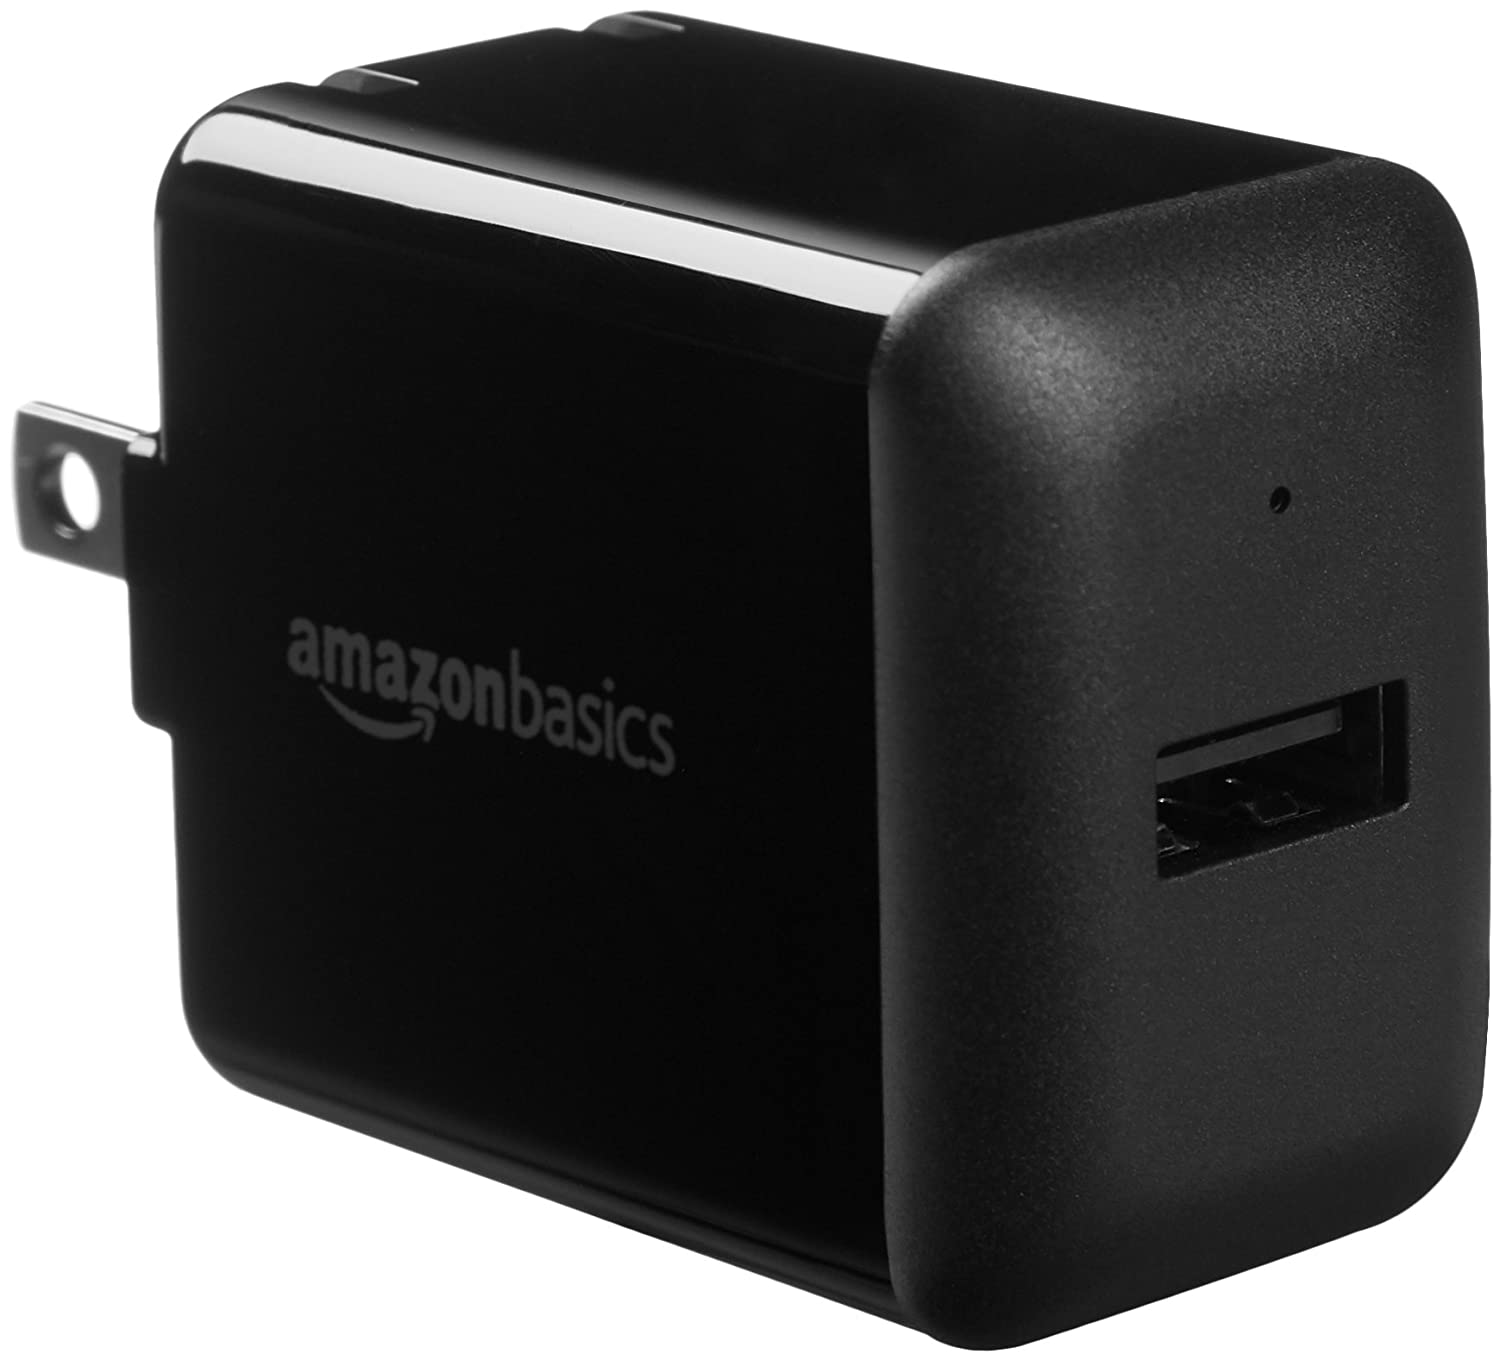 AmazonBasics One-Port USB Wall Charger (2.4 Amp) - Black